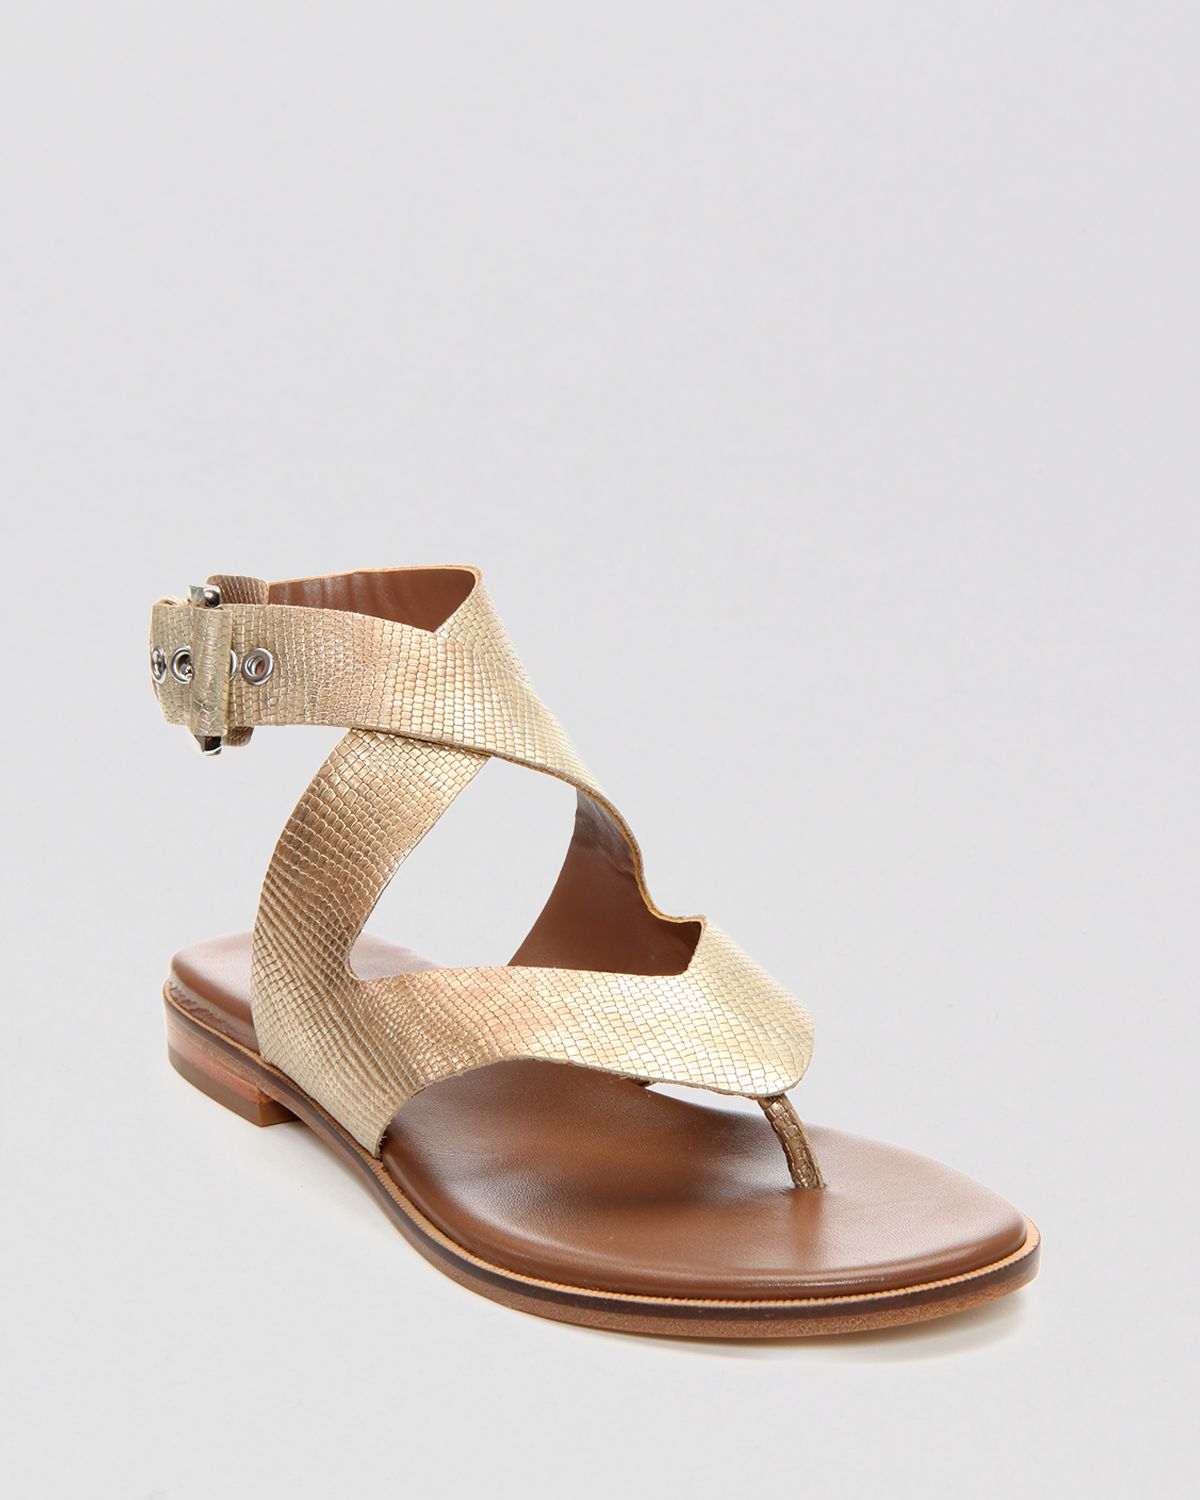 collections cheap price Donald J Pliner Embossed Thong Sandals cheap sale outlet store enjoy sale online discount wholesale deals cheap price Bsic6hw8